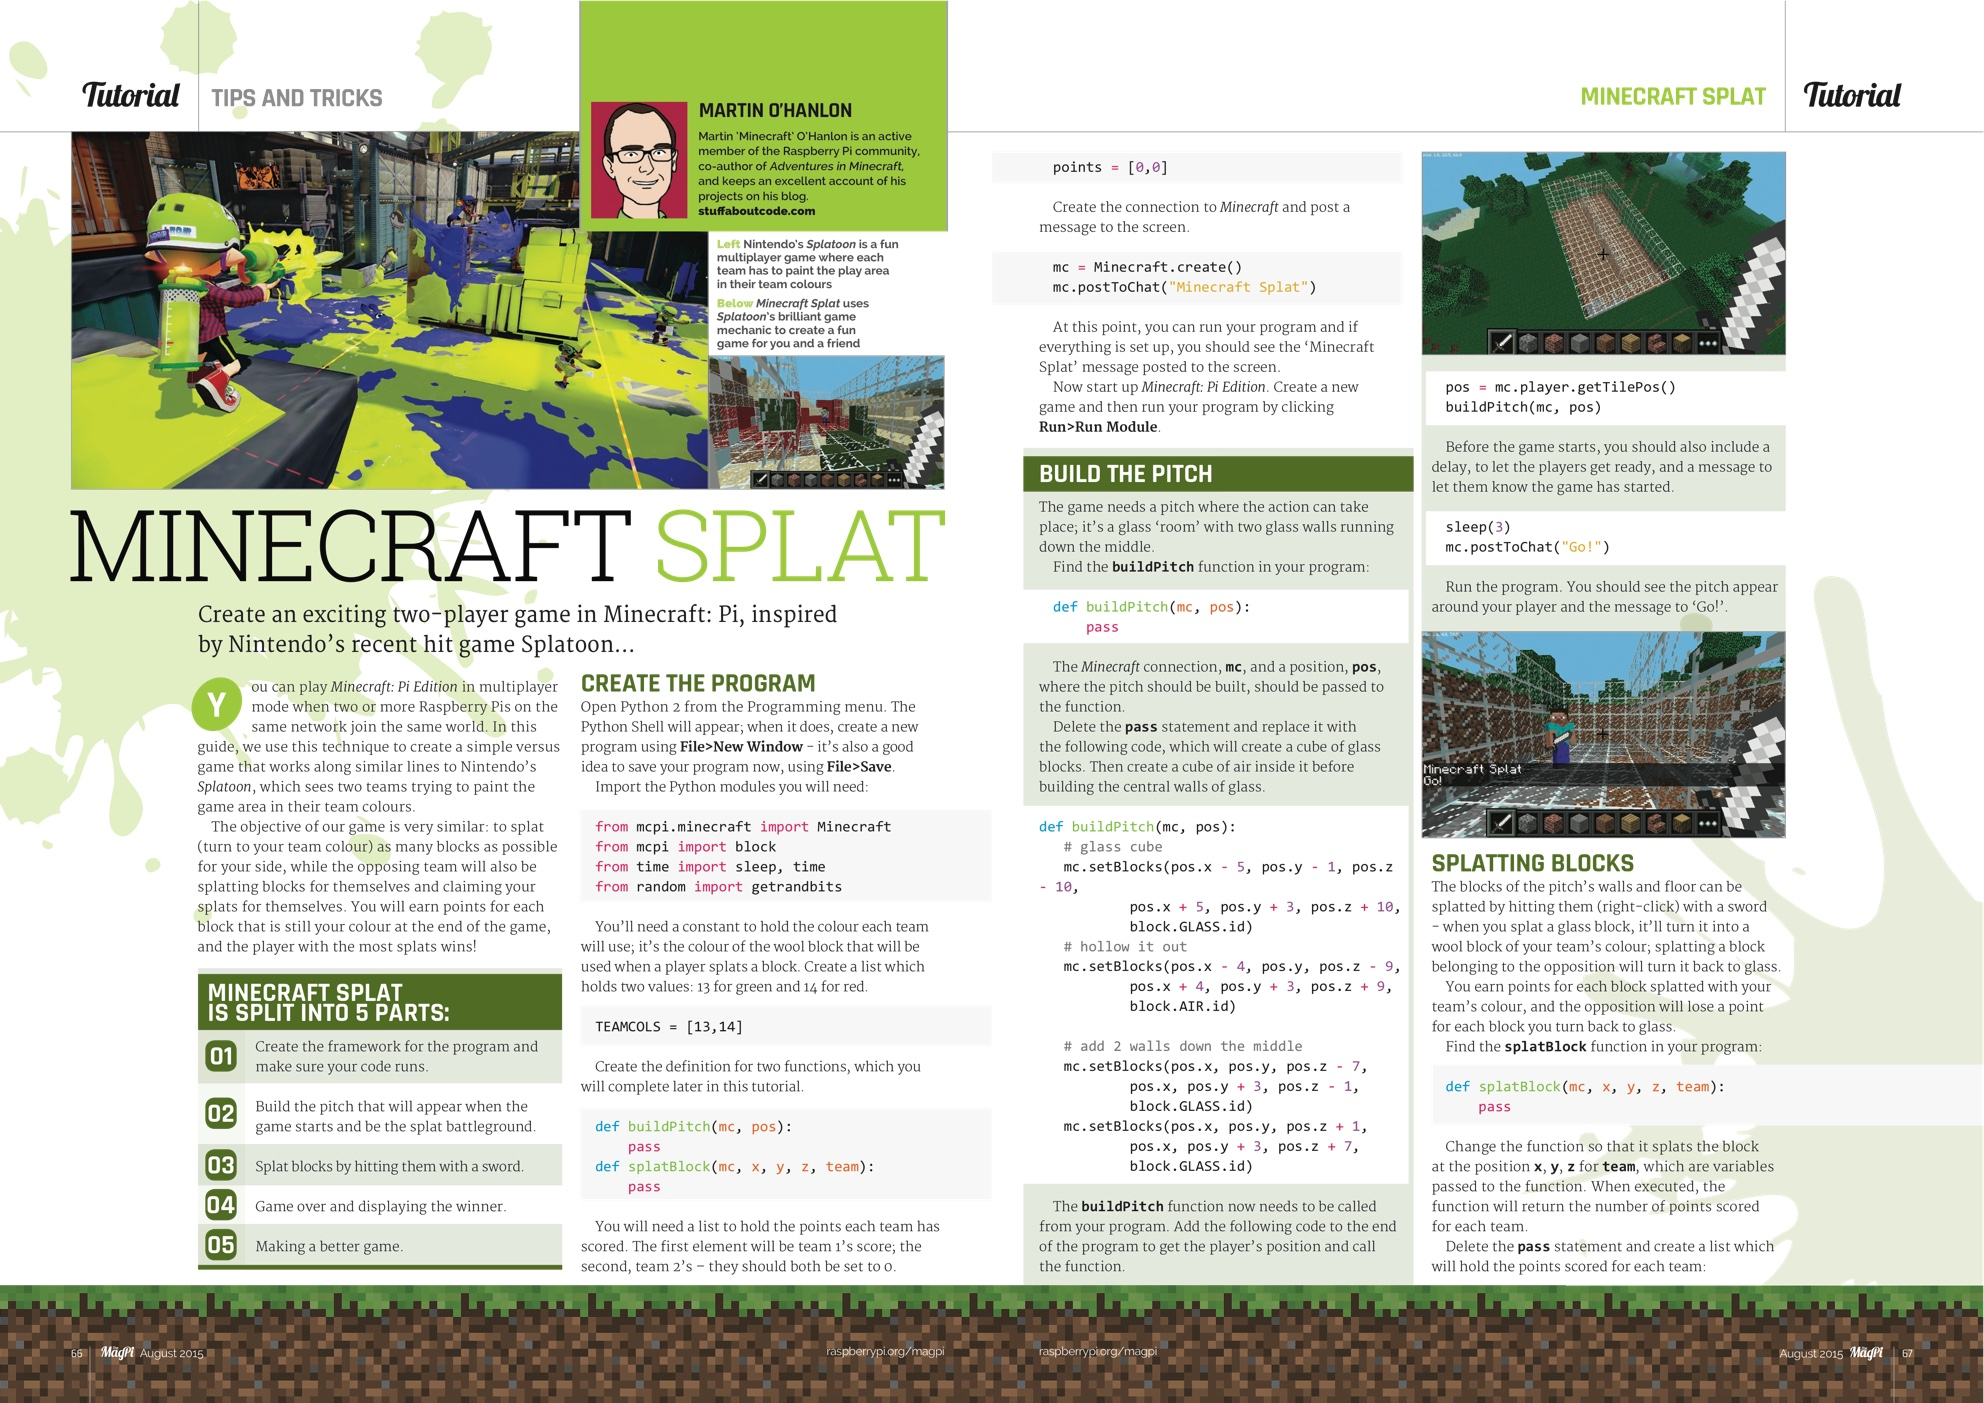 Raspberry Pi Blog News Announcements And Ideas Using Circuit Boards The Designer Created Two Chic Board 36 Minecraft Splat